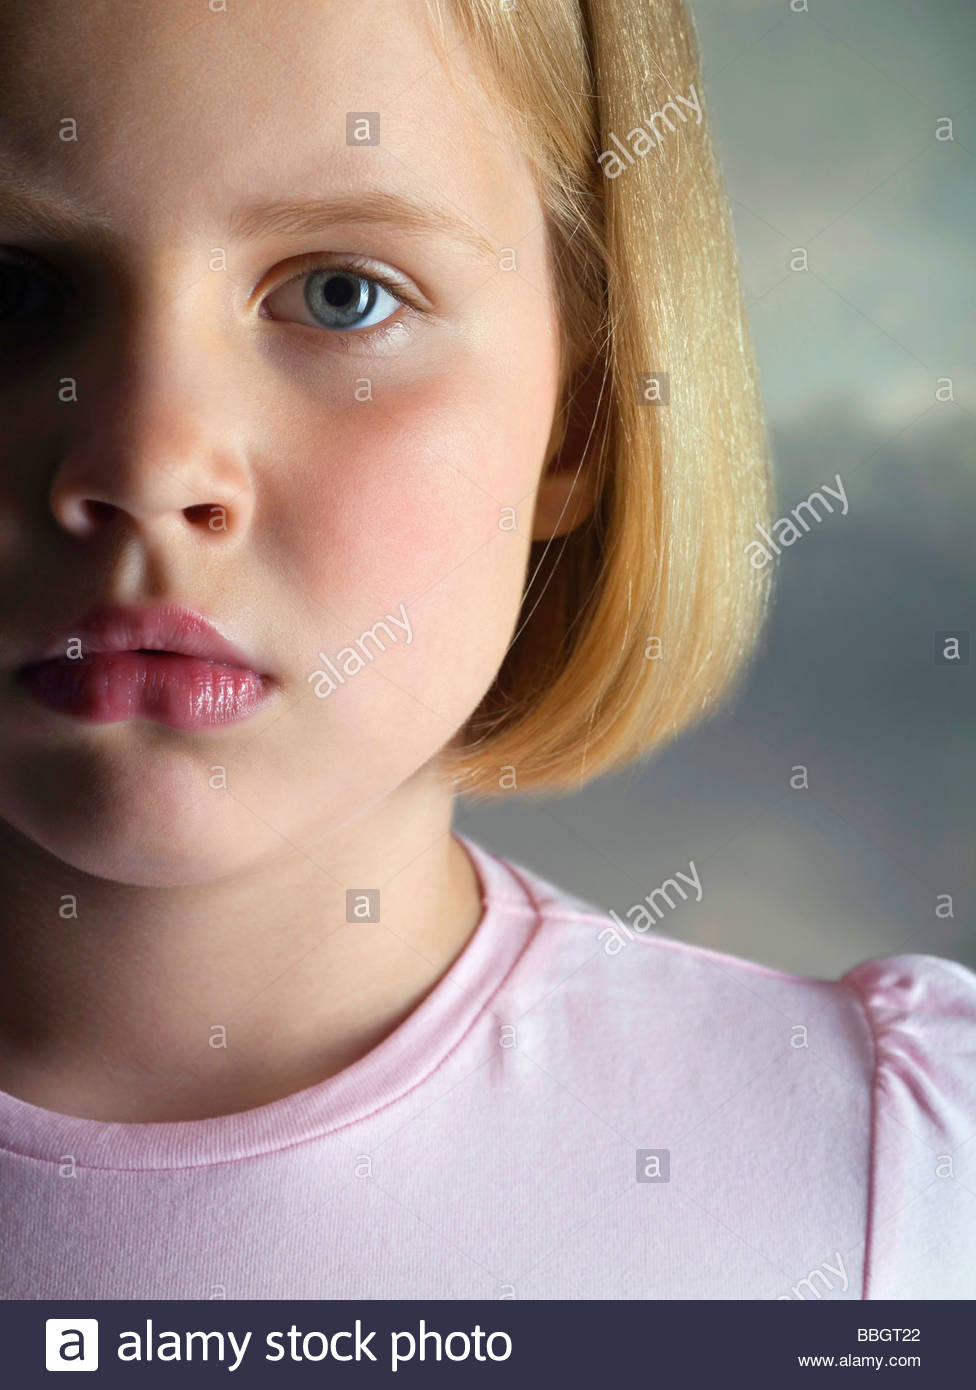 Portrait a sad young girl, studio shot - Stock Image